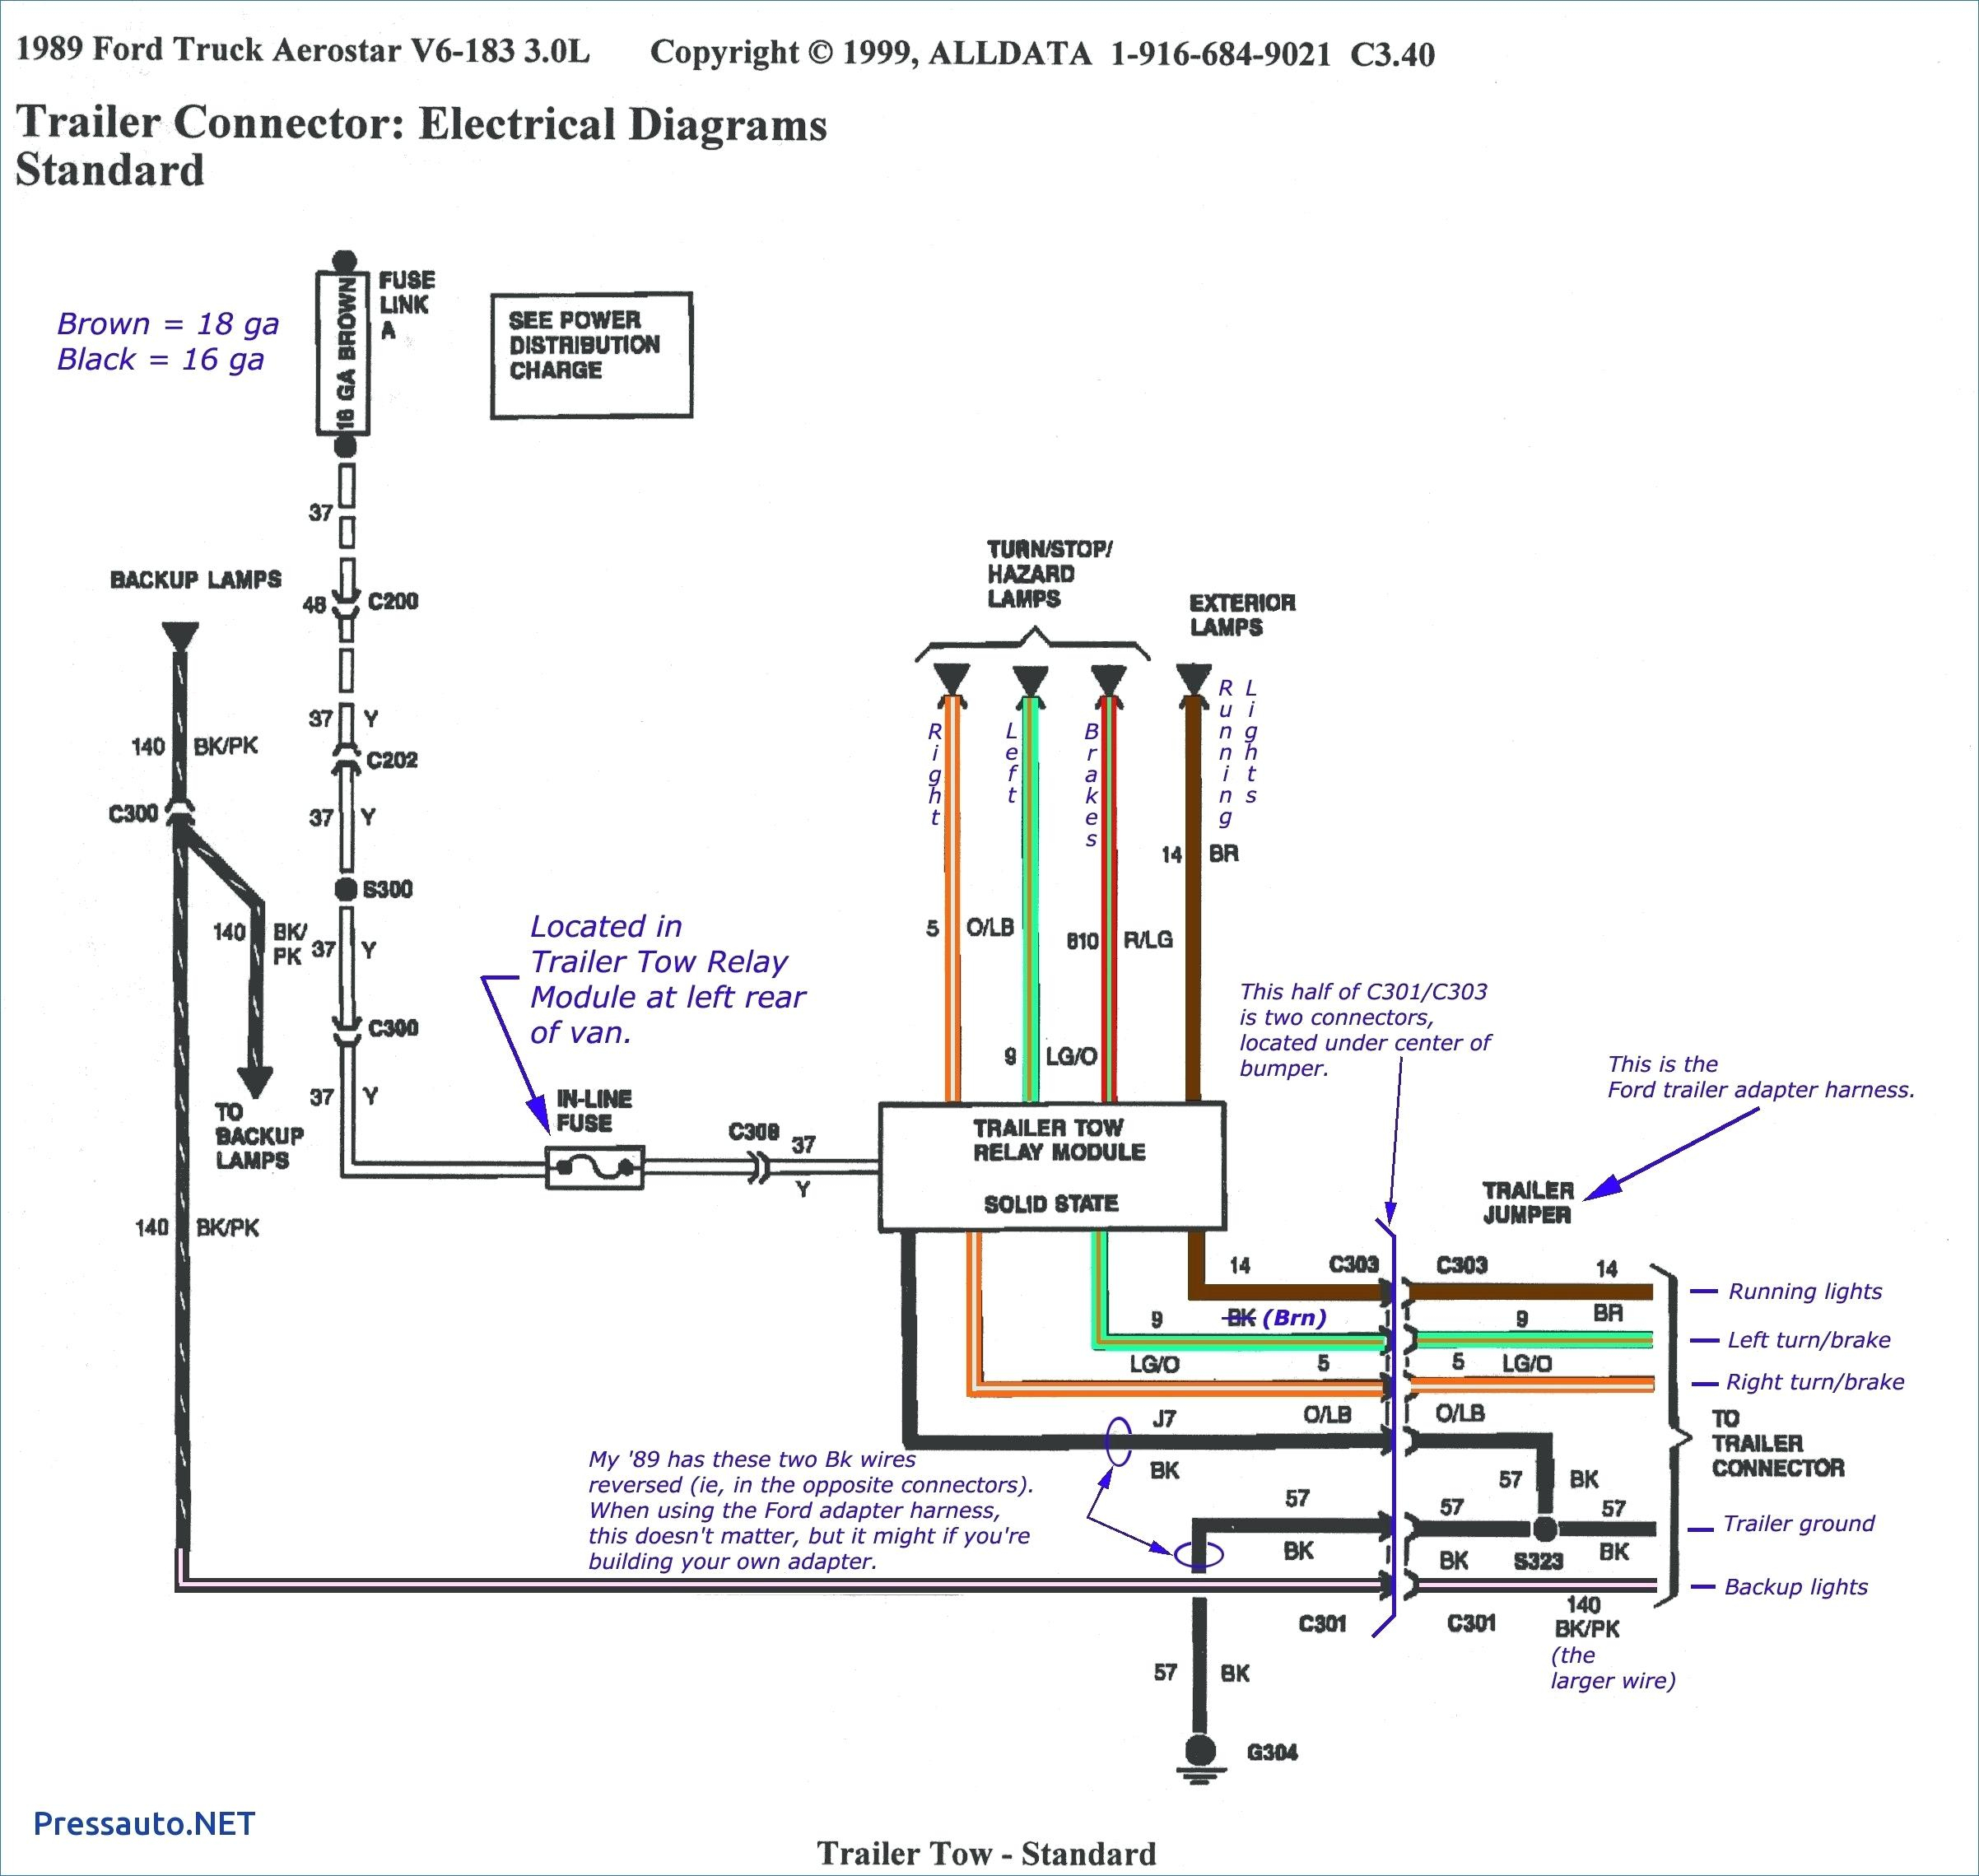 Jayco Trailer Wiring Diagram | Wiring Diagram - Jayco Trailer Wiring Diagram